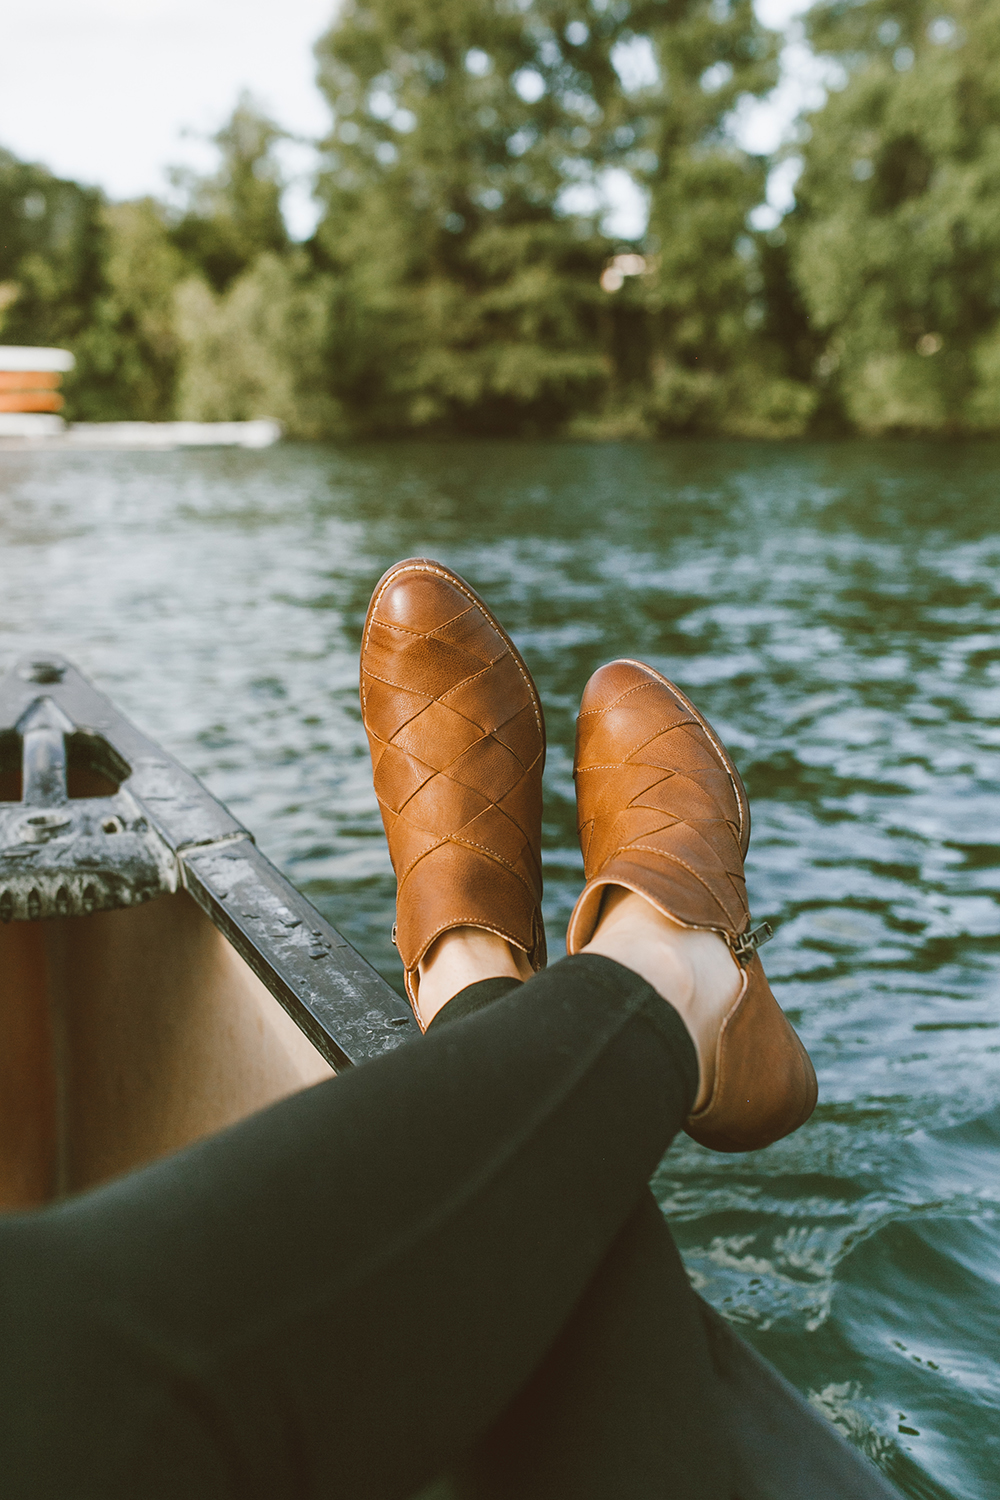 livvyland-blog-olivia-watson-canoe-lady-bird-lake-austin-texas-lifestyle-fashion-blogger-backcountry-seychelles-deep-sea-ankle-booties-2